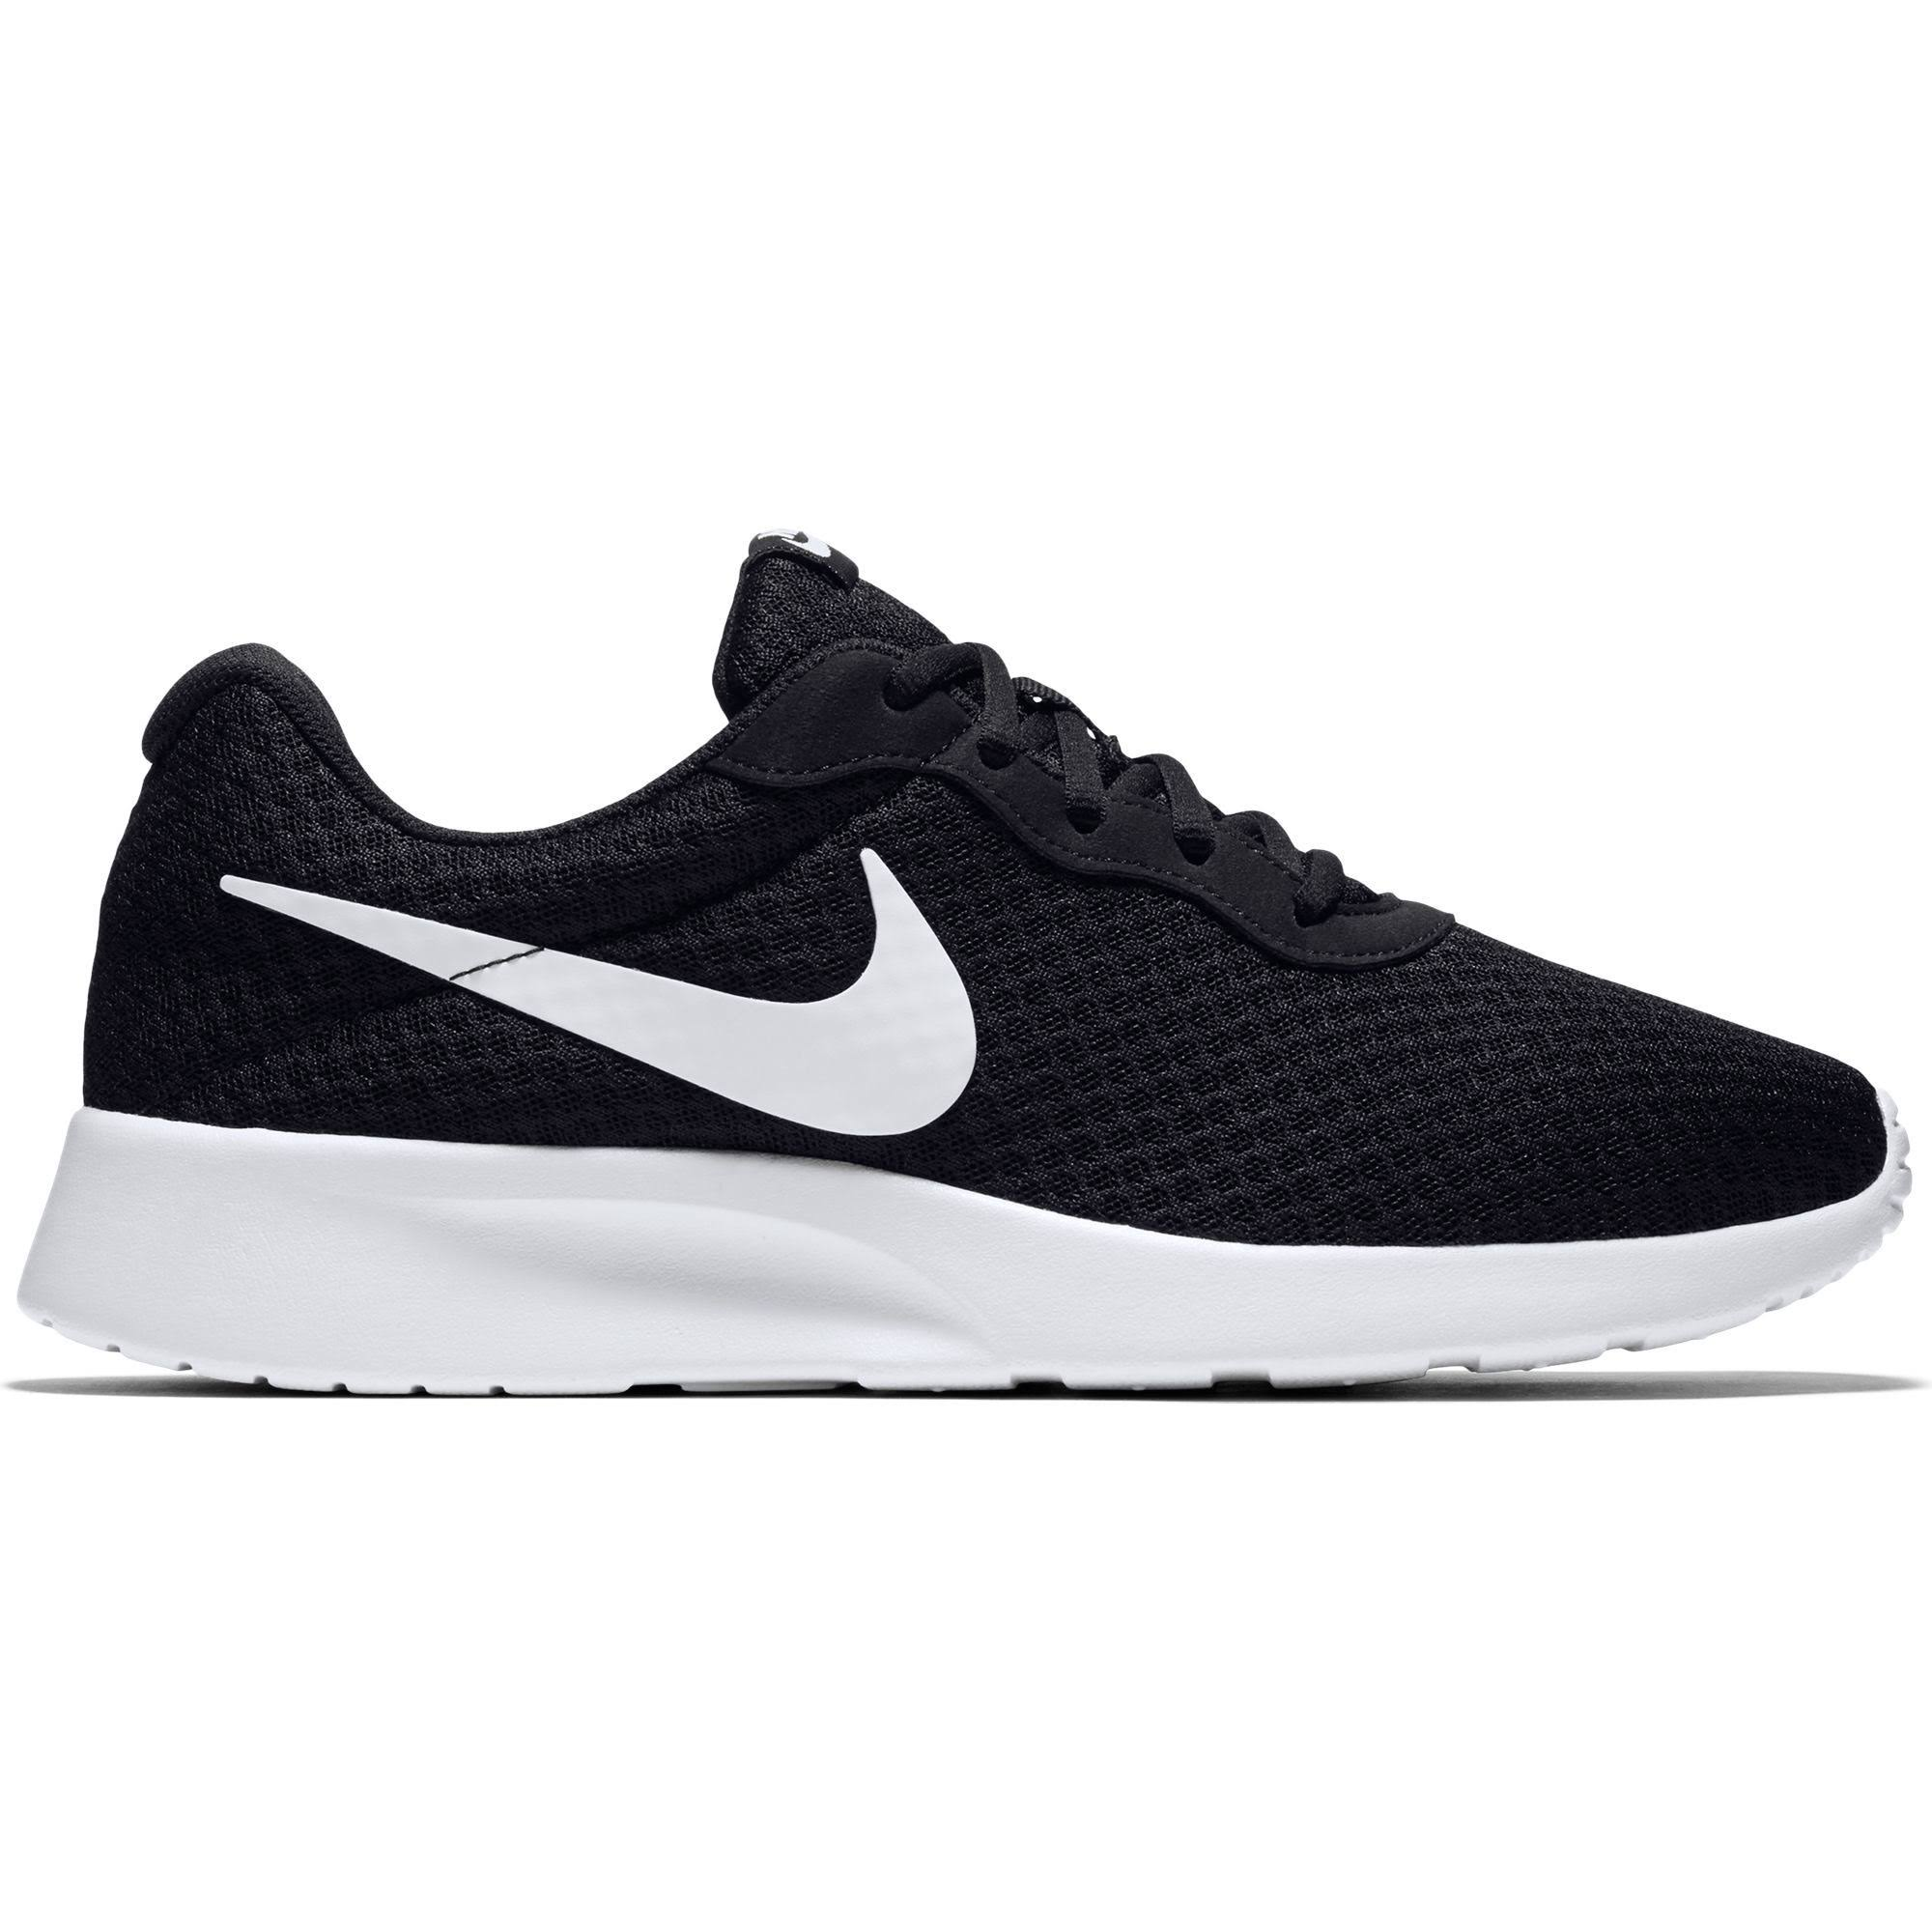 812654 11 011 Sneakers 0 Men Black Blue Nike fwqXtzx